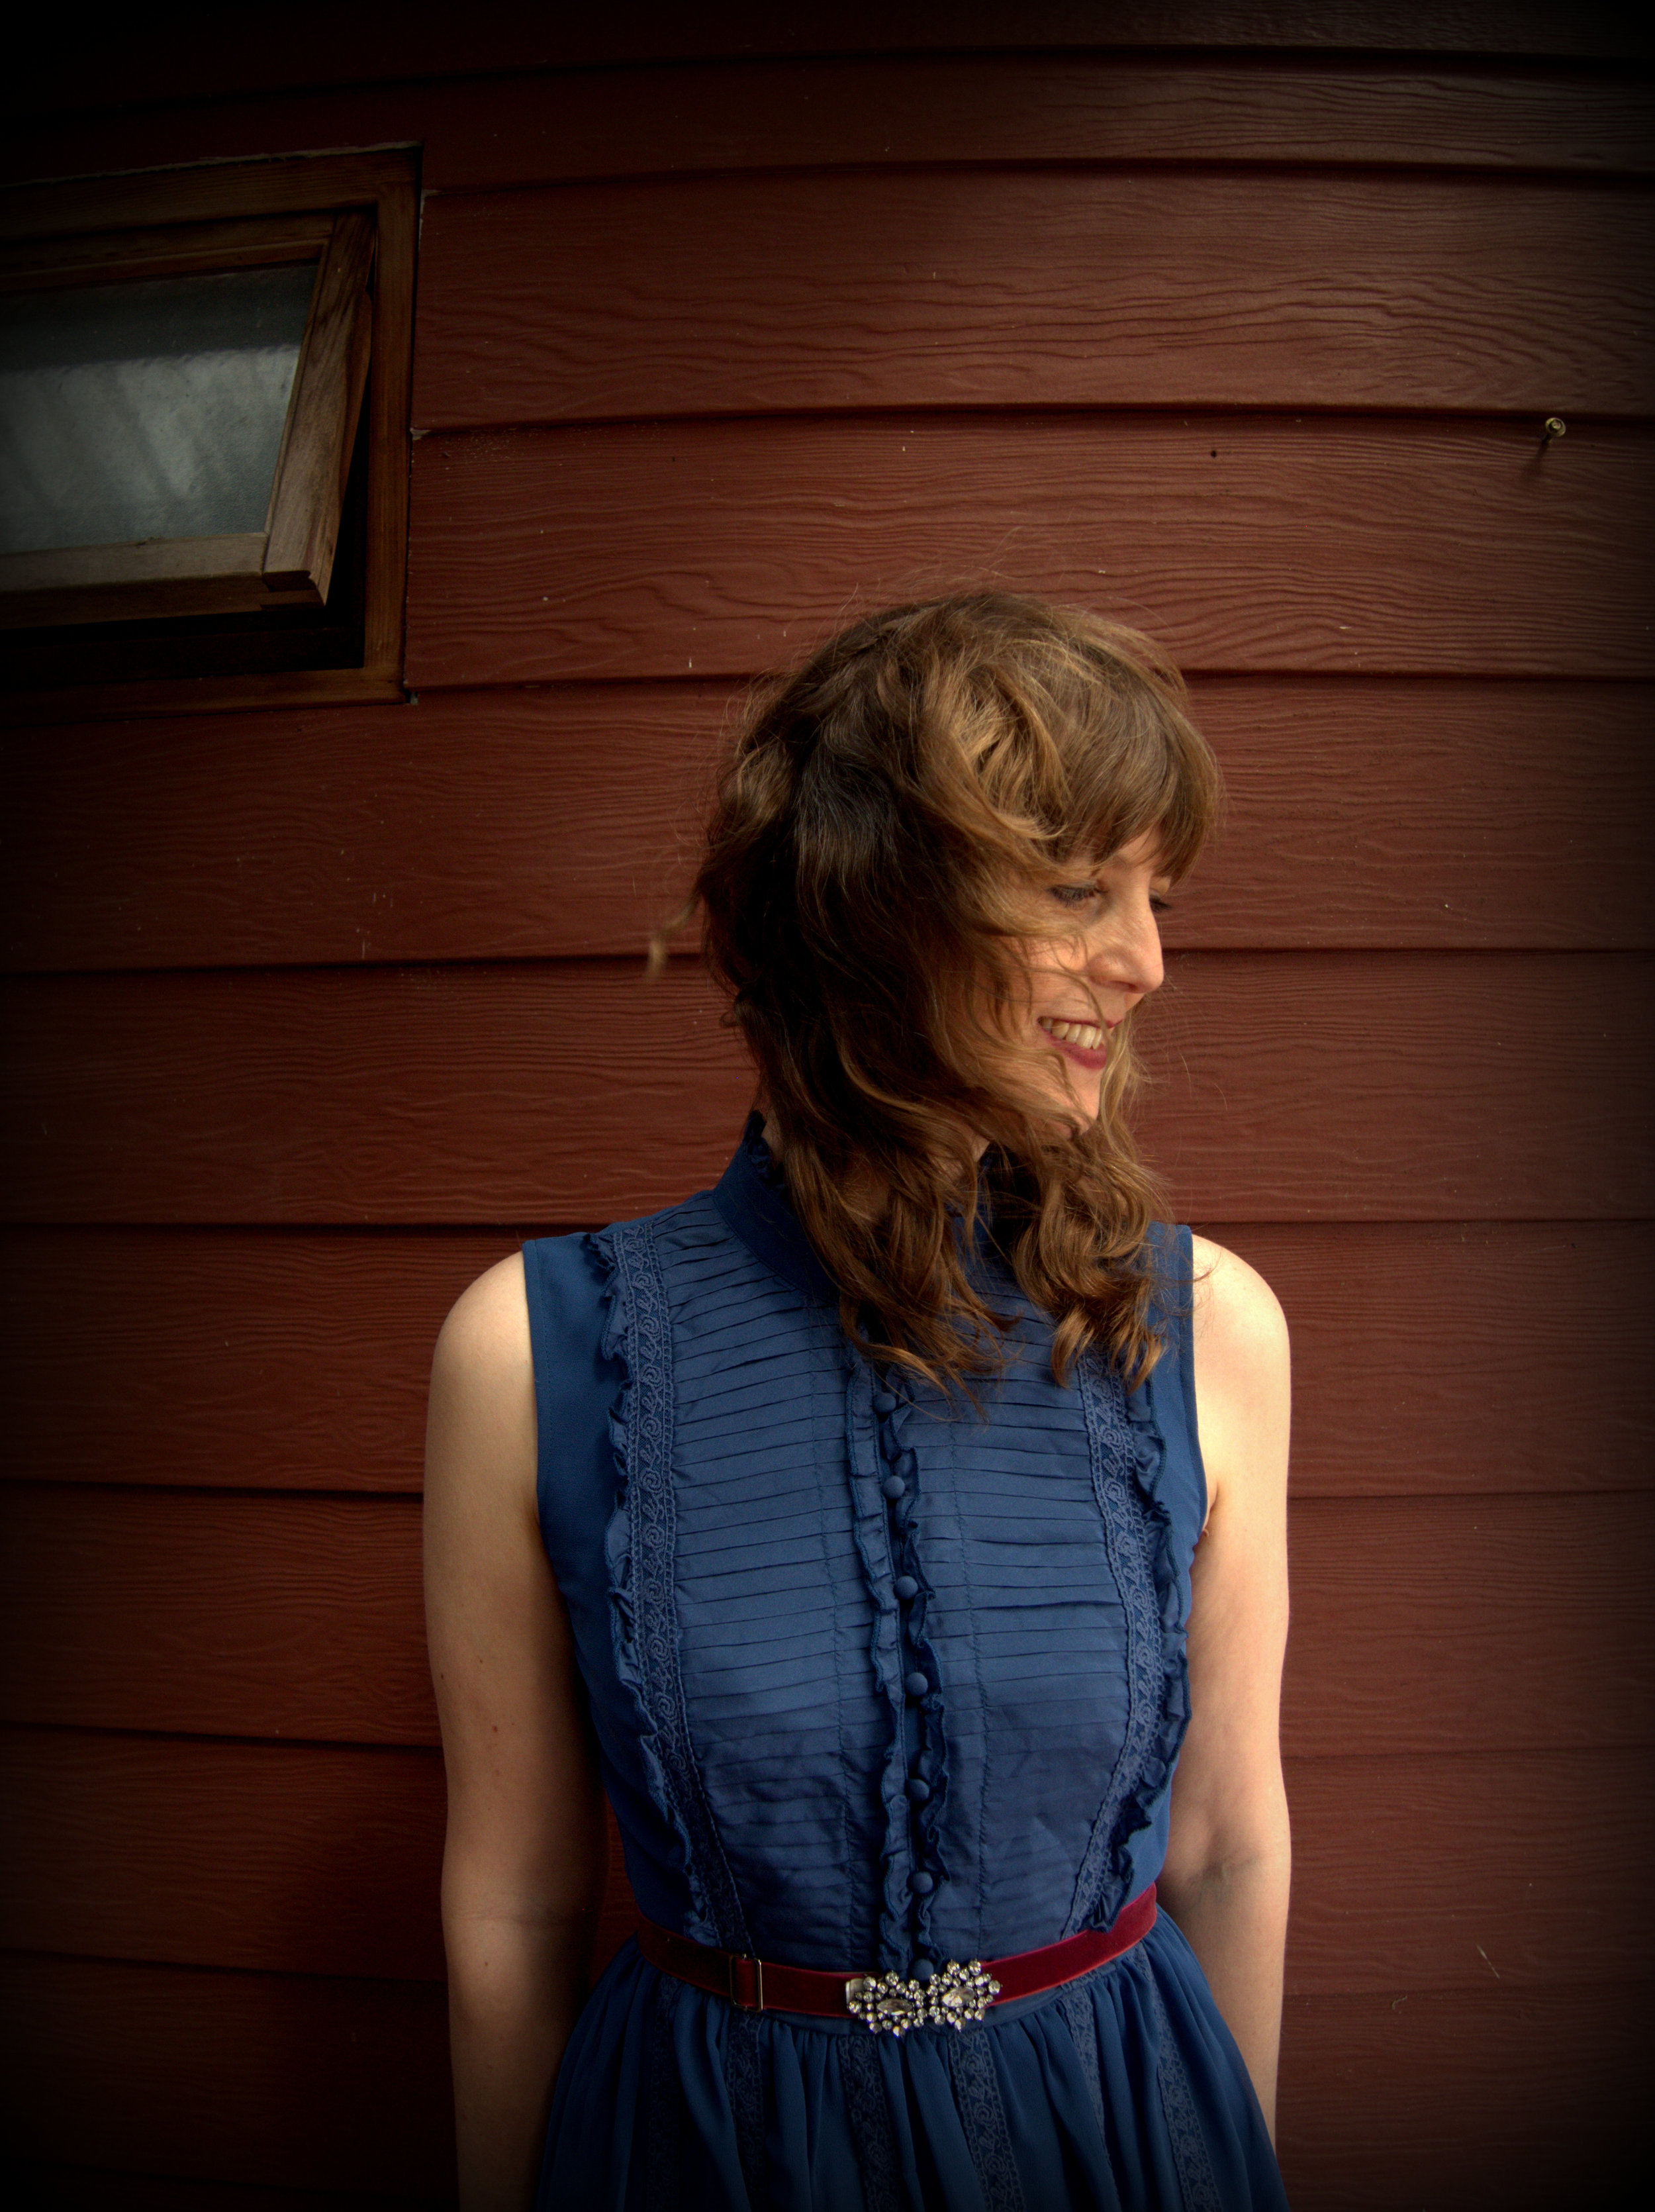 Molly Murn, Author and Poetess